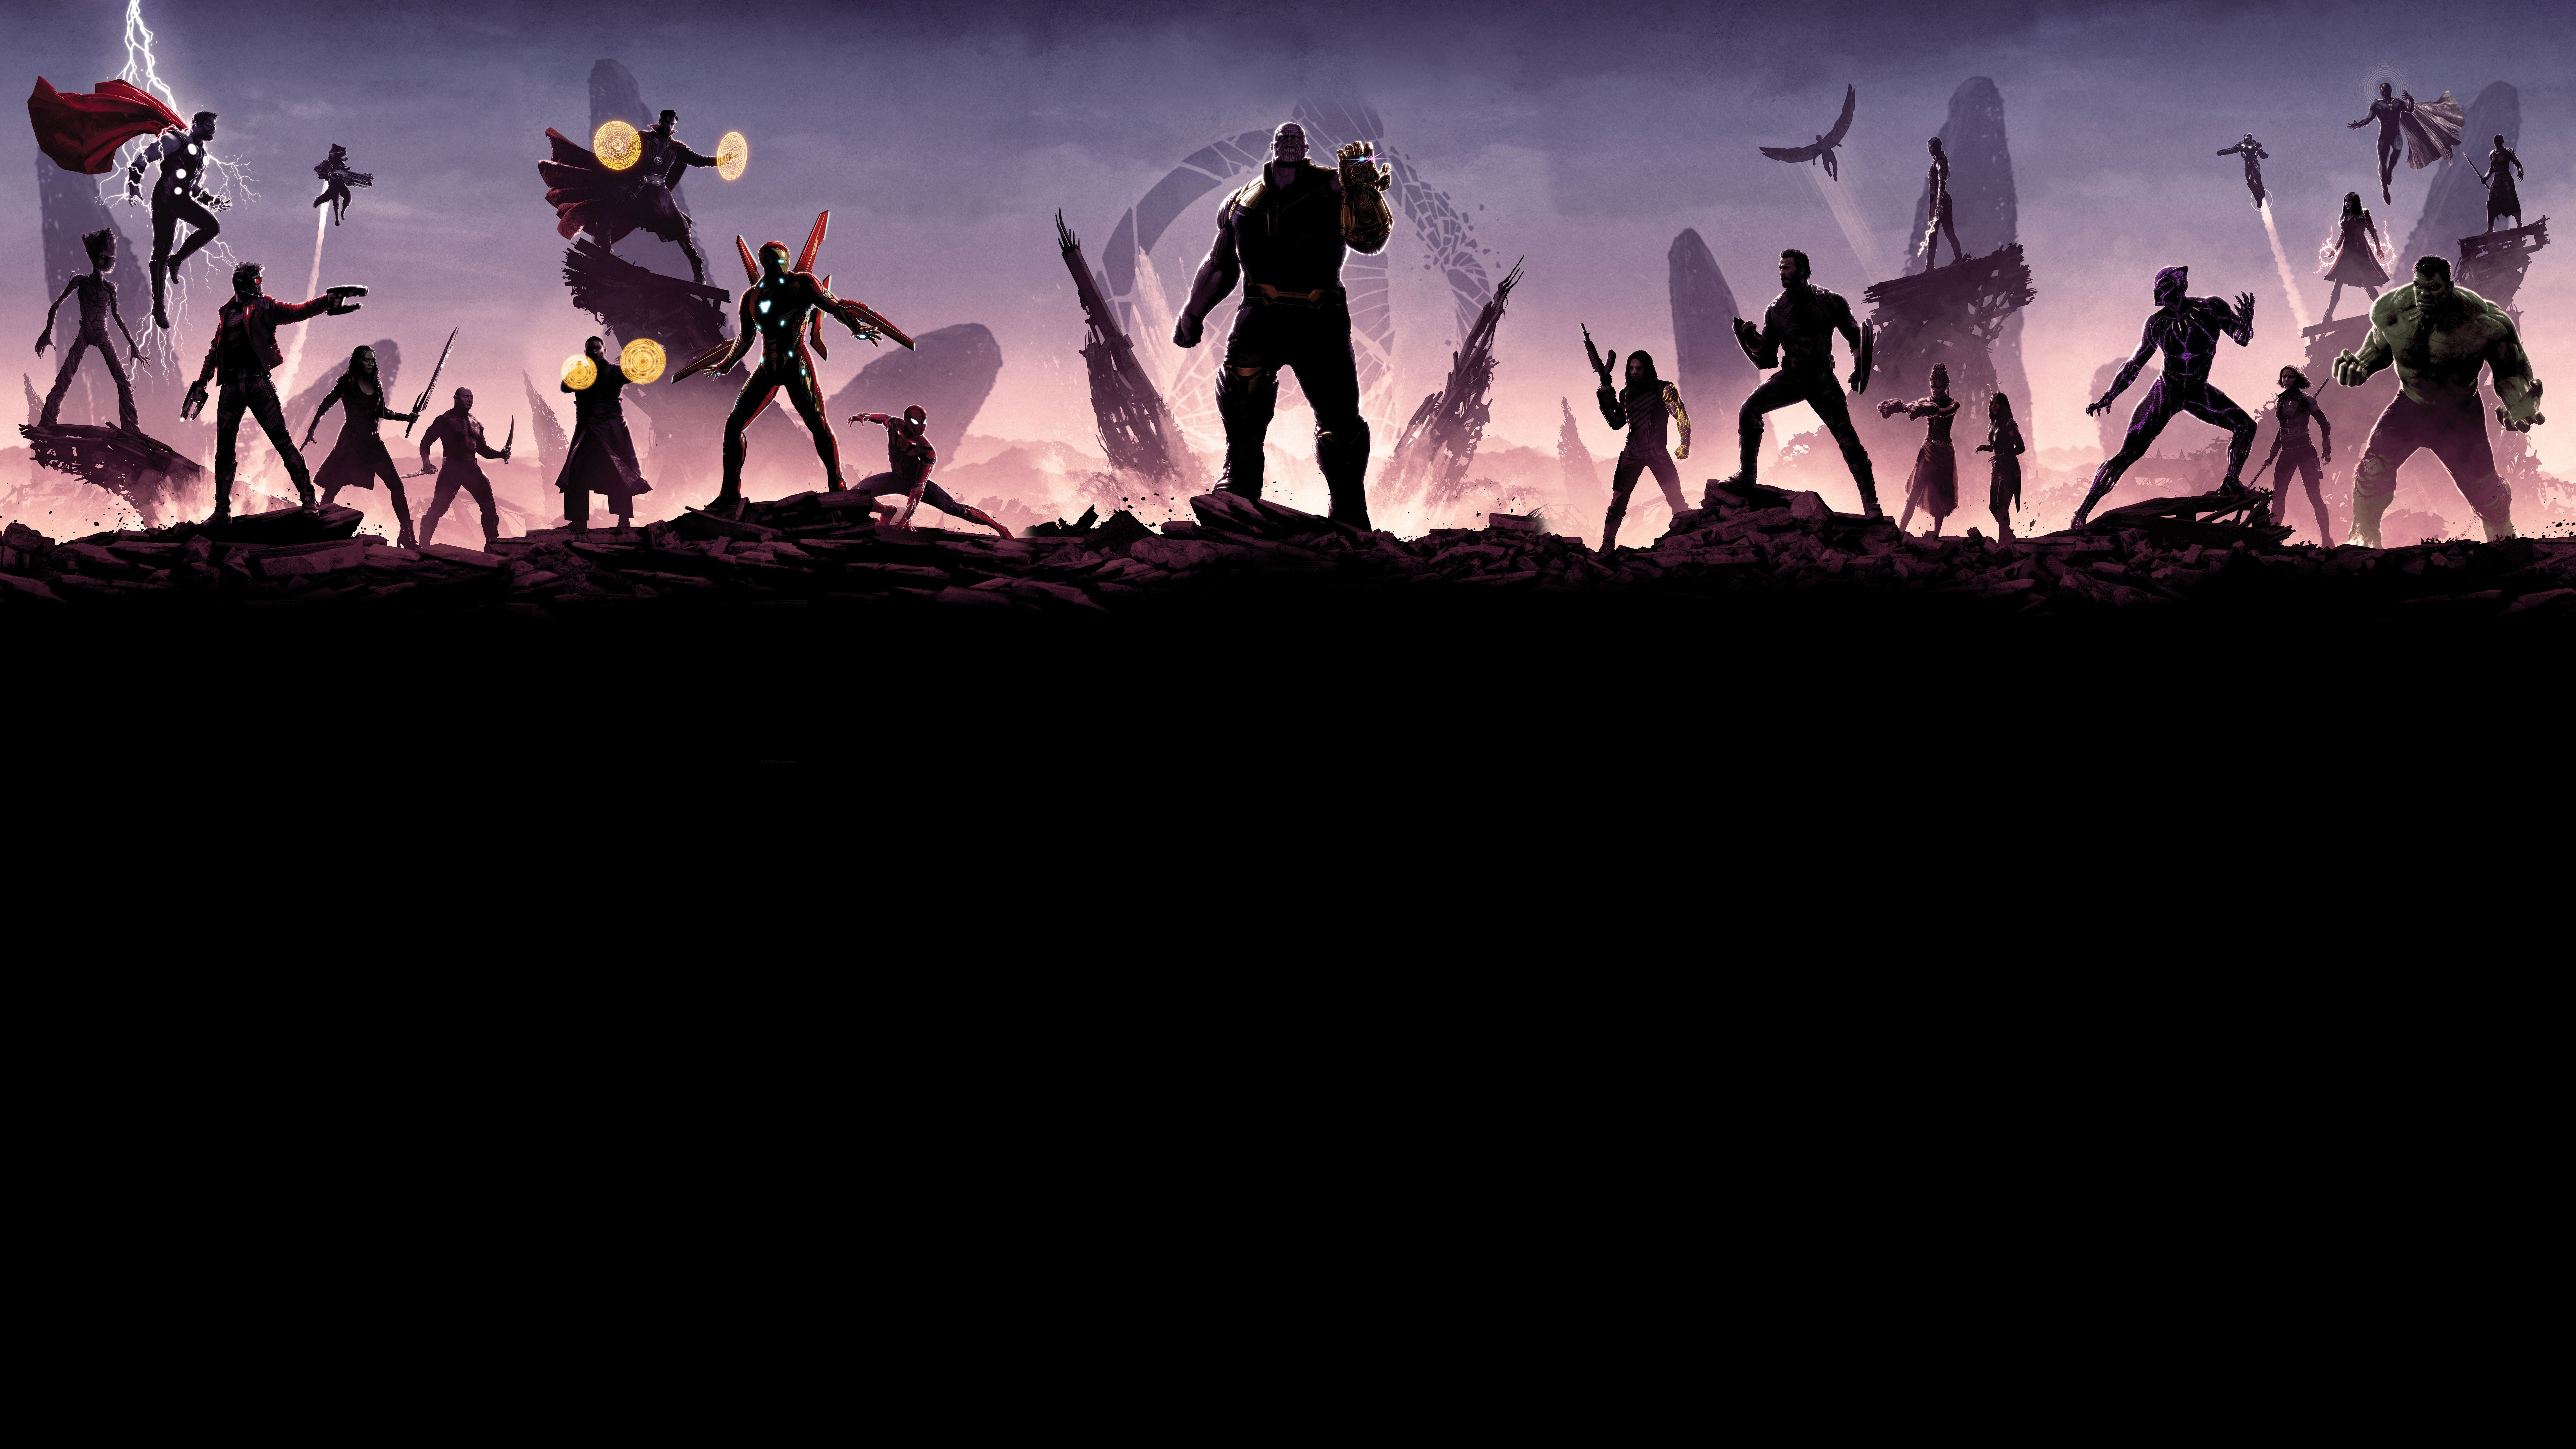 7680x4320 Avengers Infinity War Minimalism 8k 8k Hd 4k Wallpapers Images Backgrounds Photos And Pictures